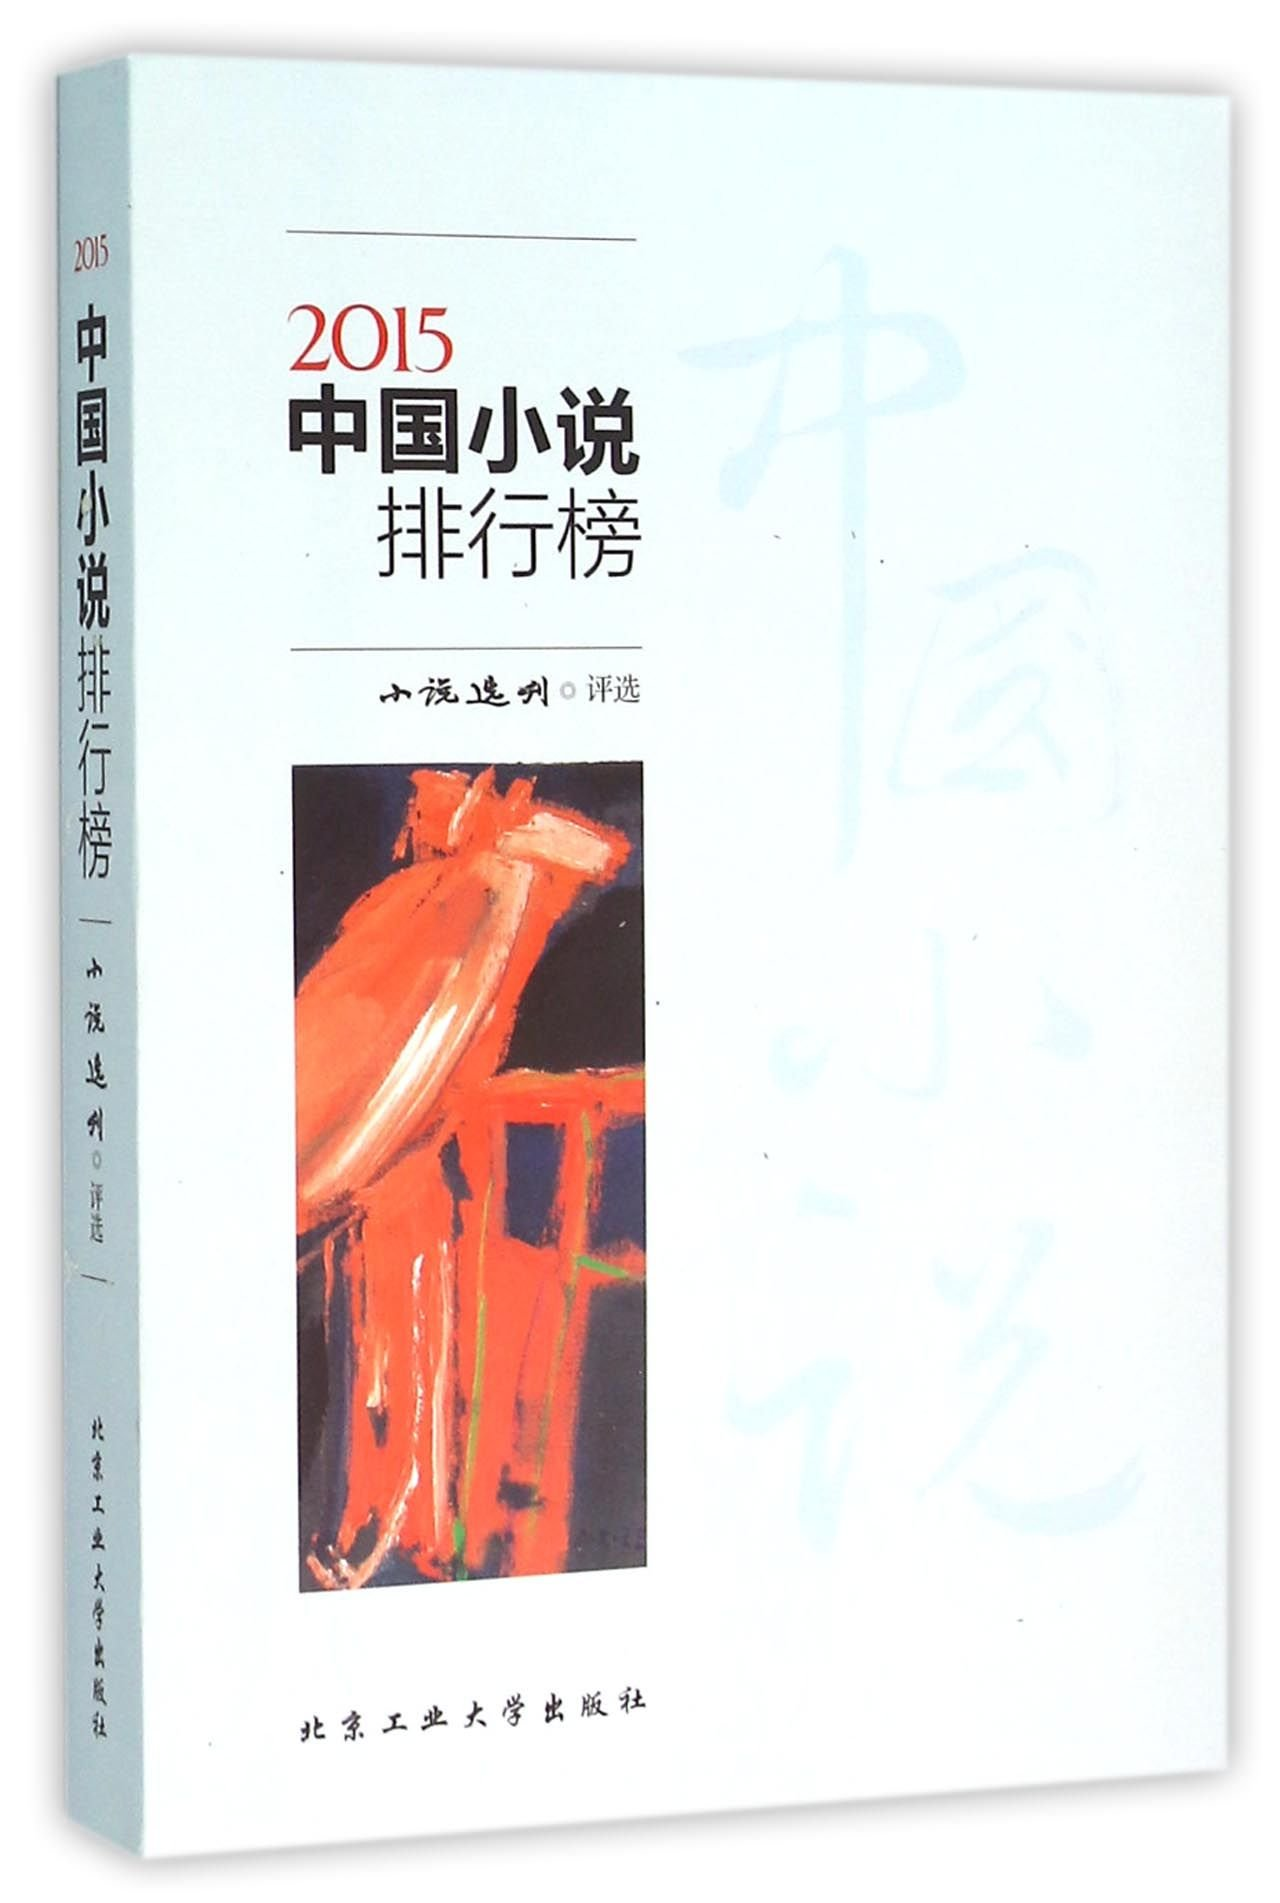 Download The Ranking List of Chinese Fictions 2015 (Chinese Edition) pdf epub